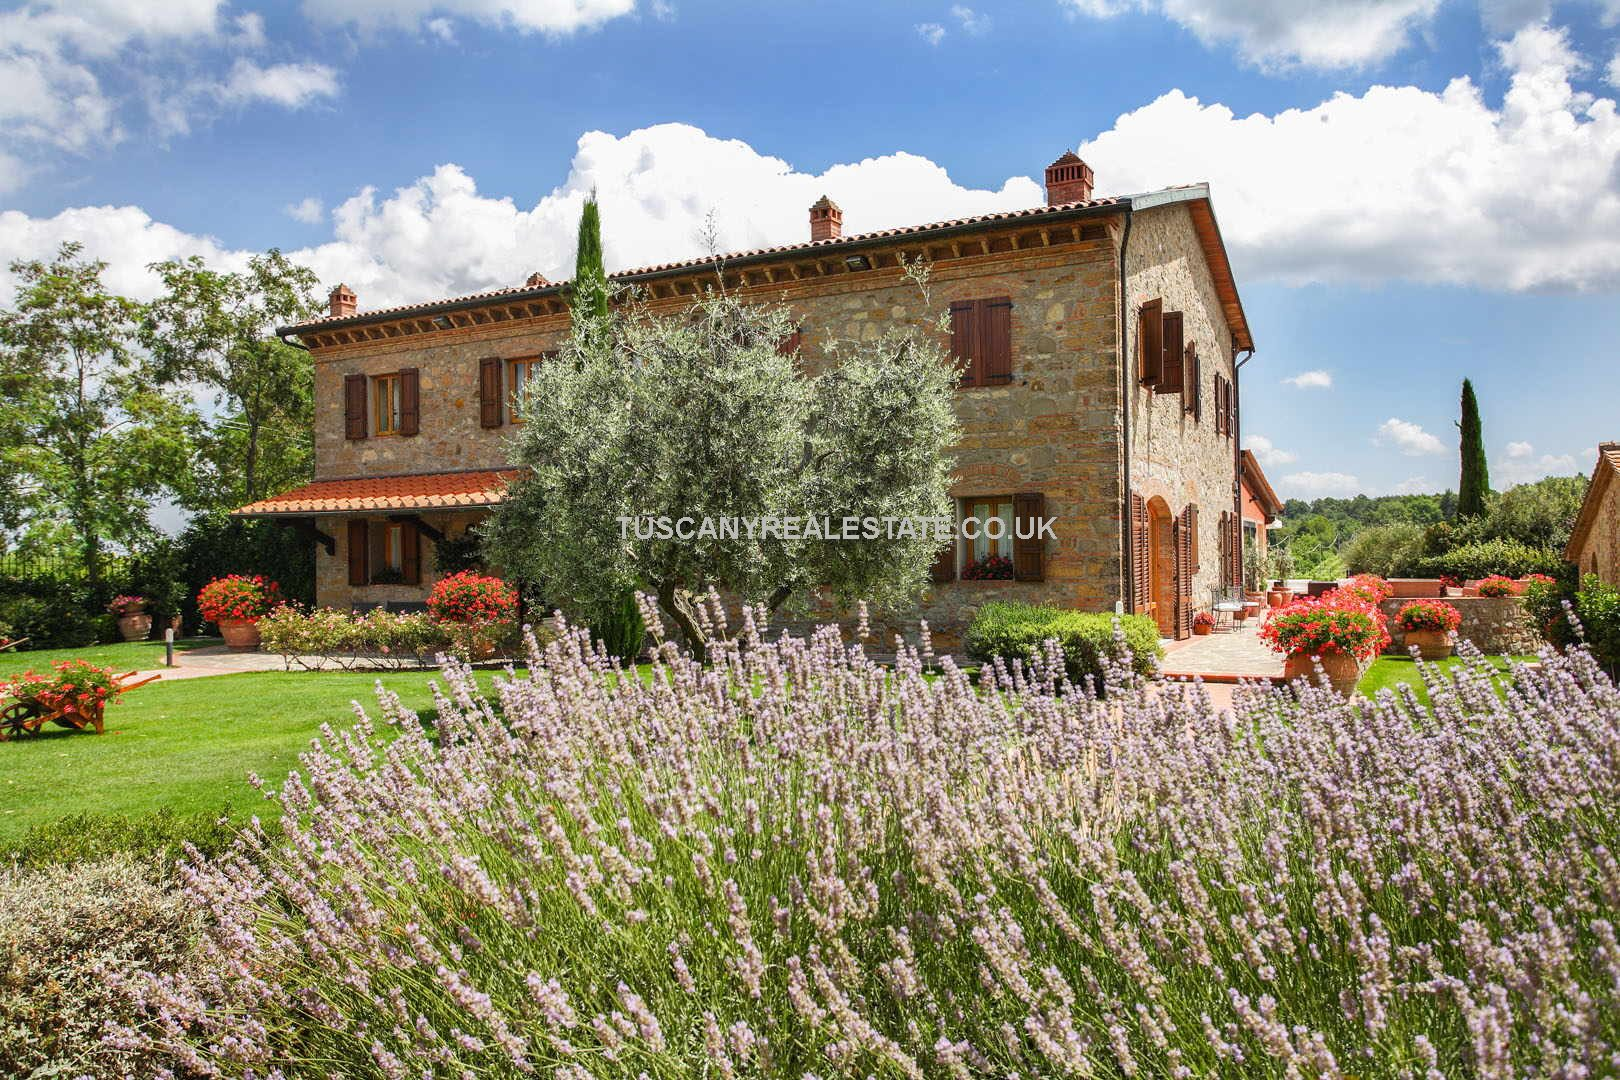 Established Tuscan holiday complex and wedding/conference venue located near to San Gimignano